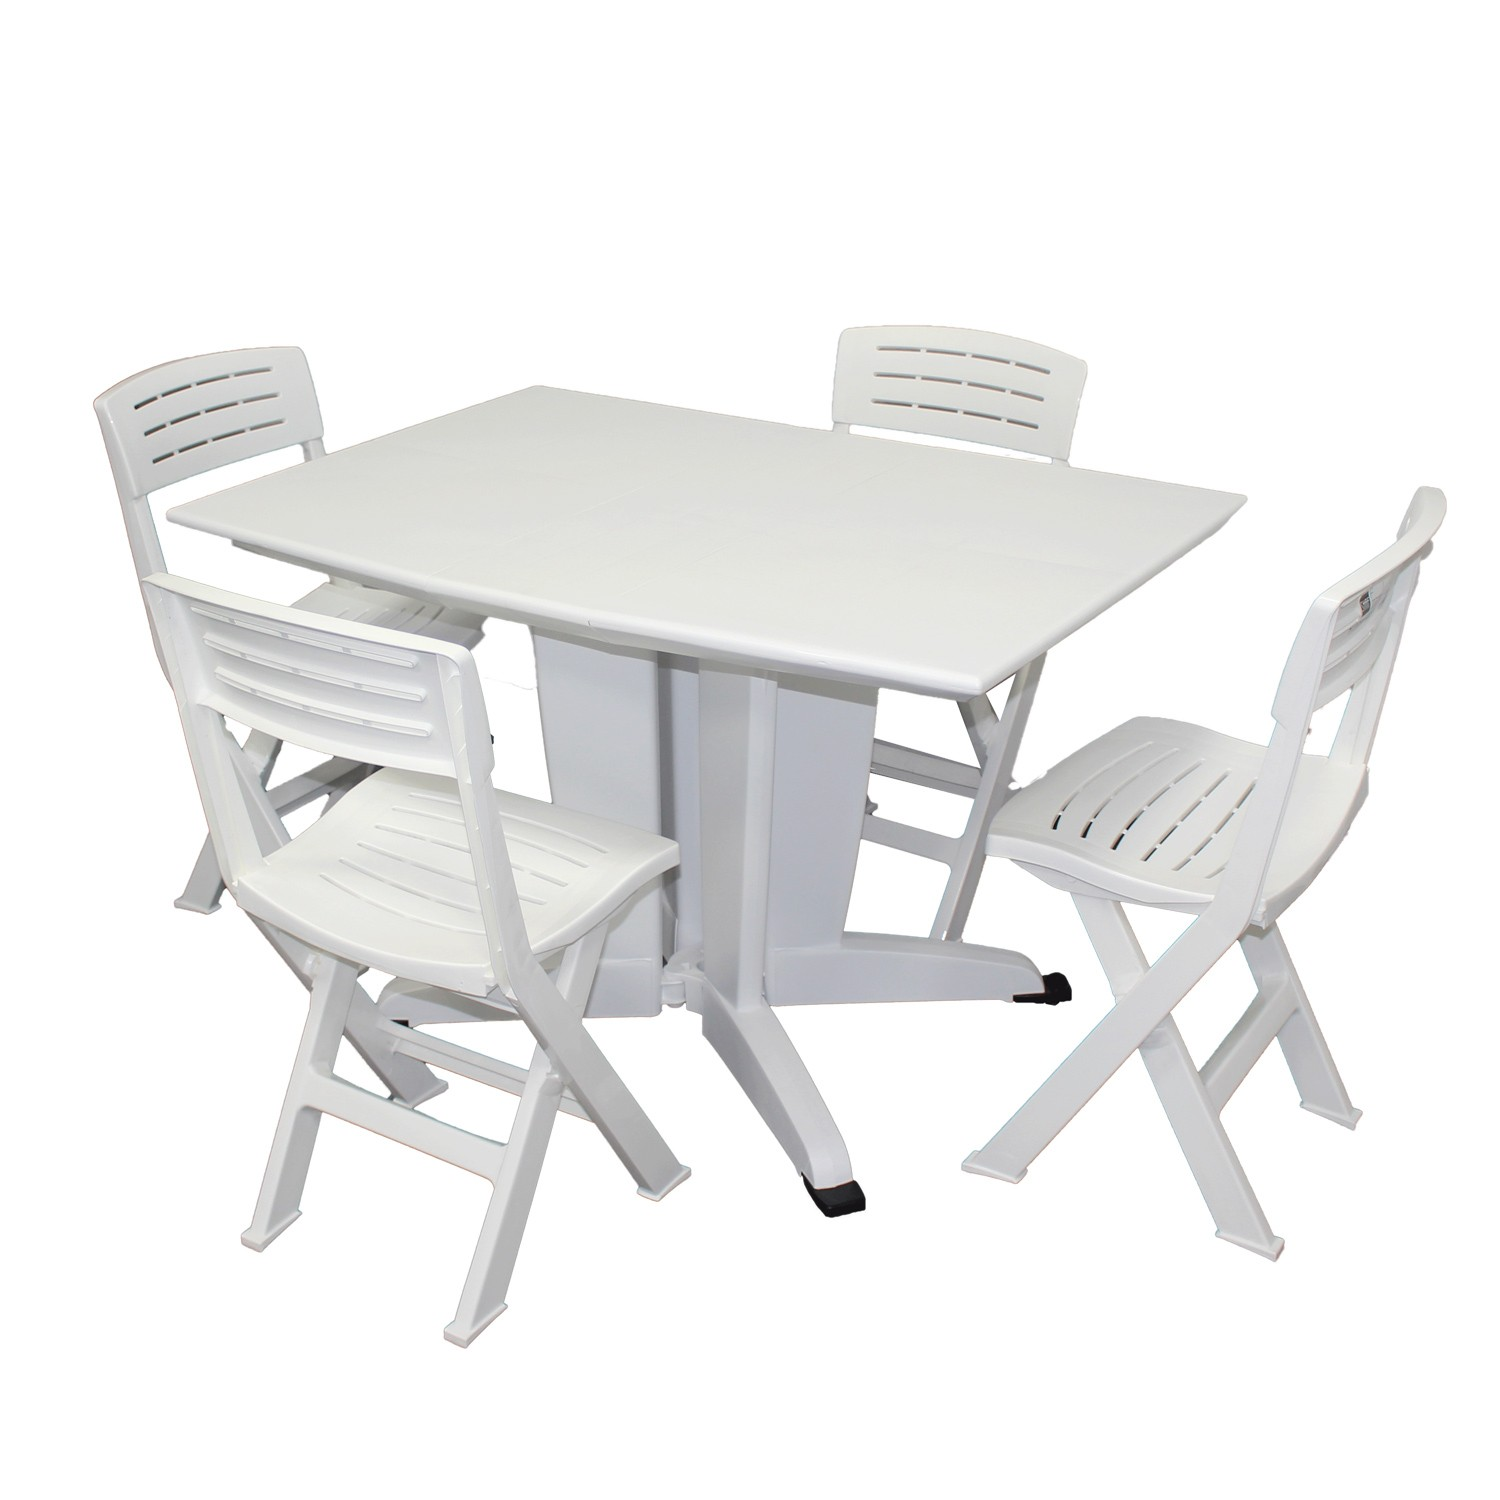 Emejing table de jardin pliante blanc images awesome for Table salle a manger jardin d ulysse